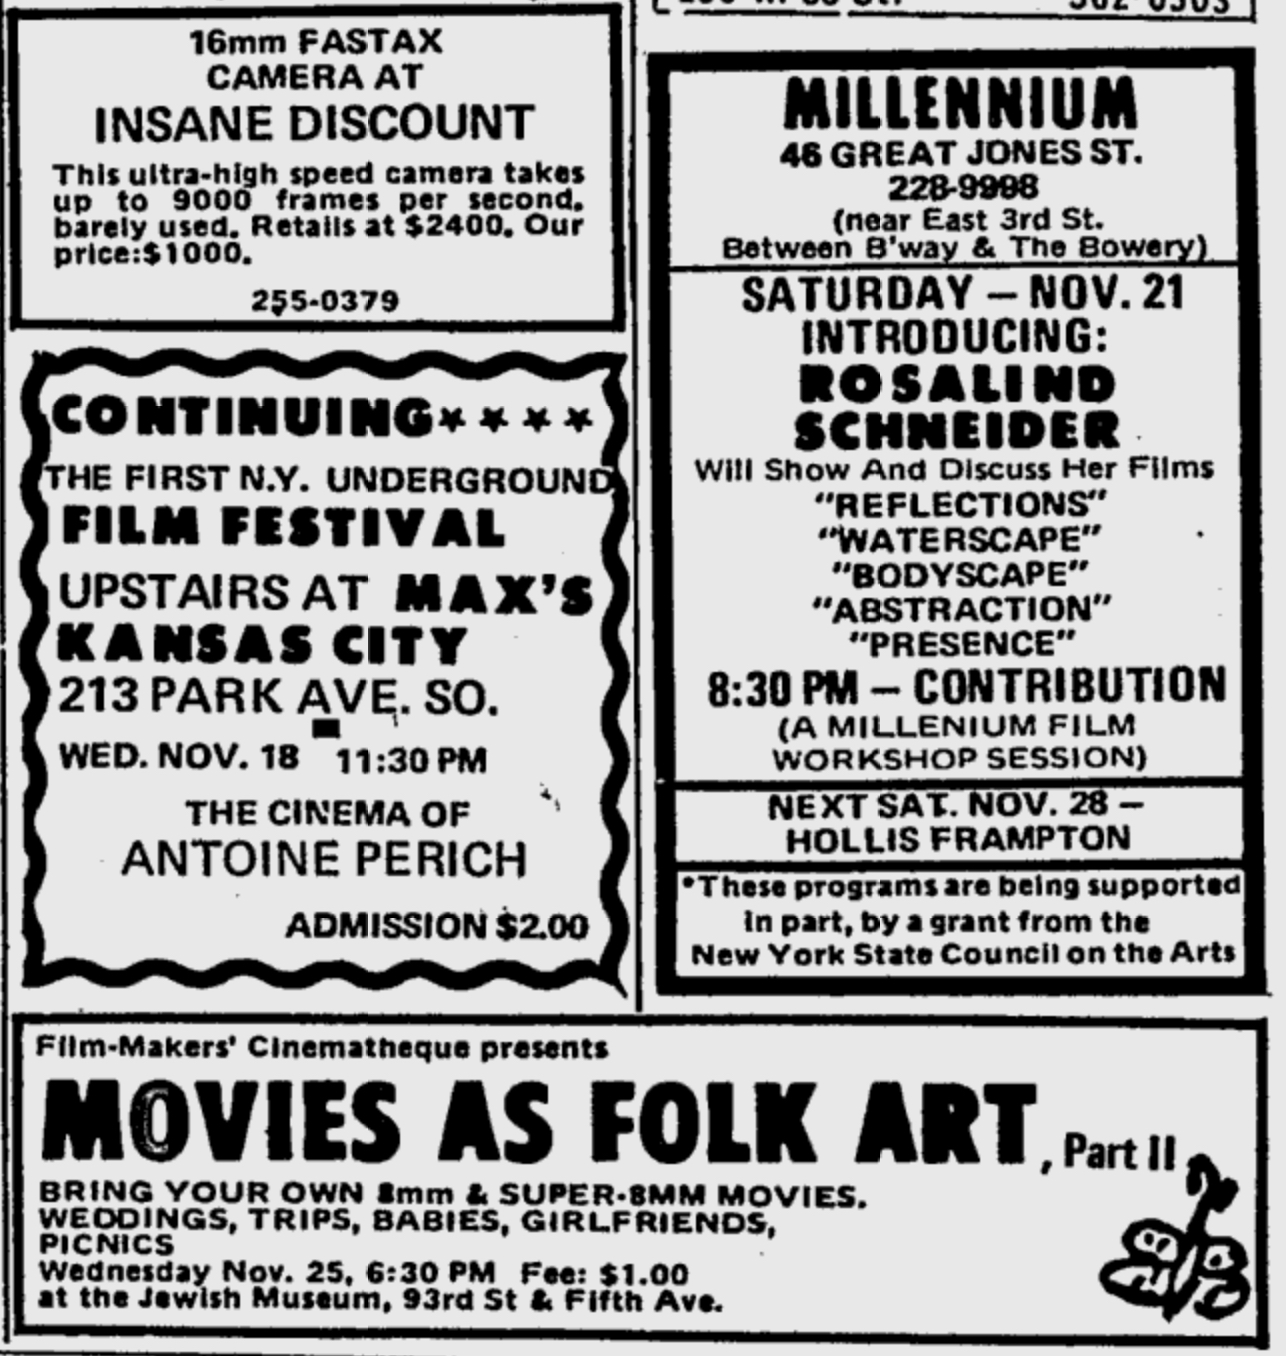 Village Voice ad for a continuation of the New York Underground Film Festival in November 1970 with films by Anton Perich